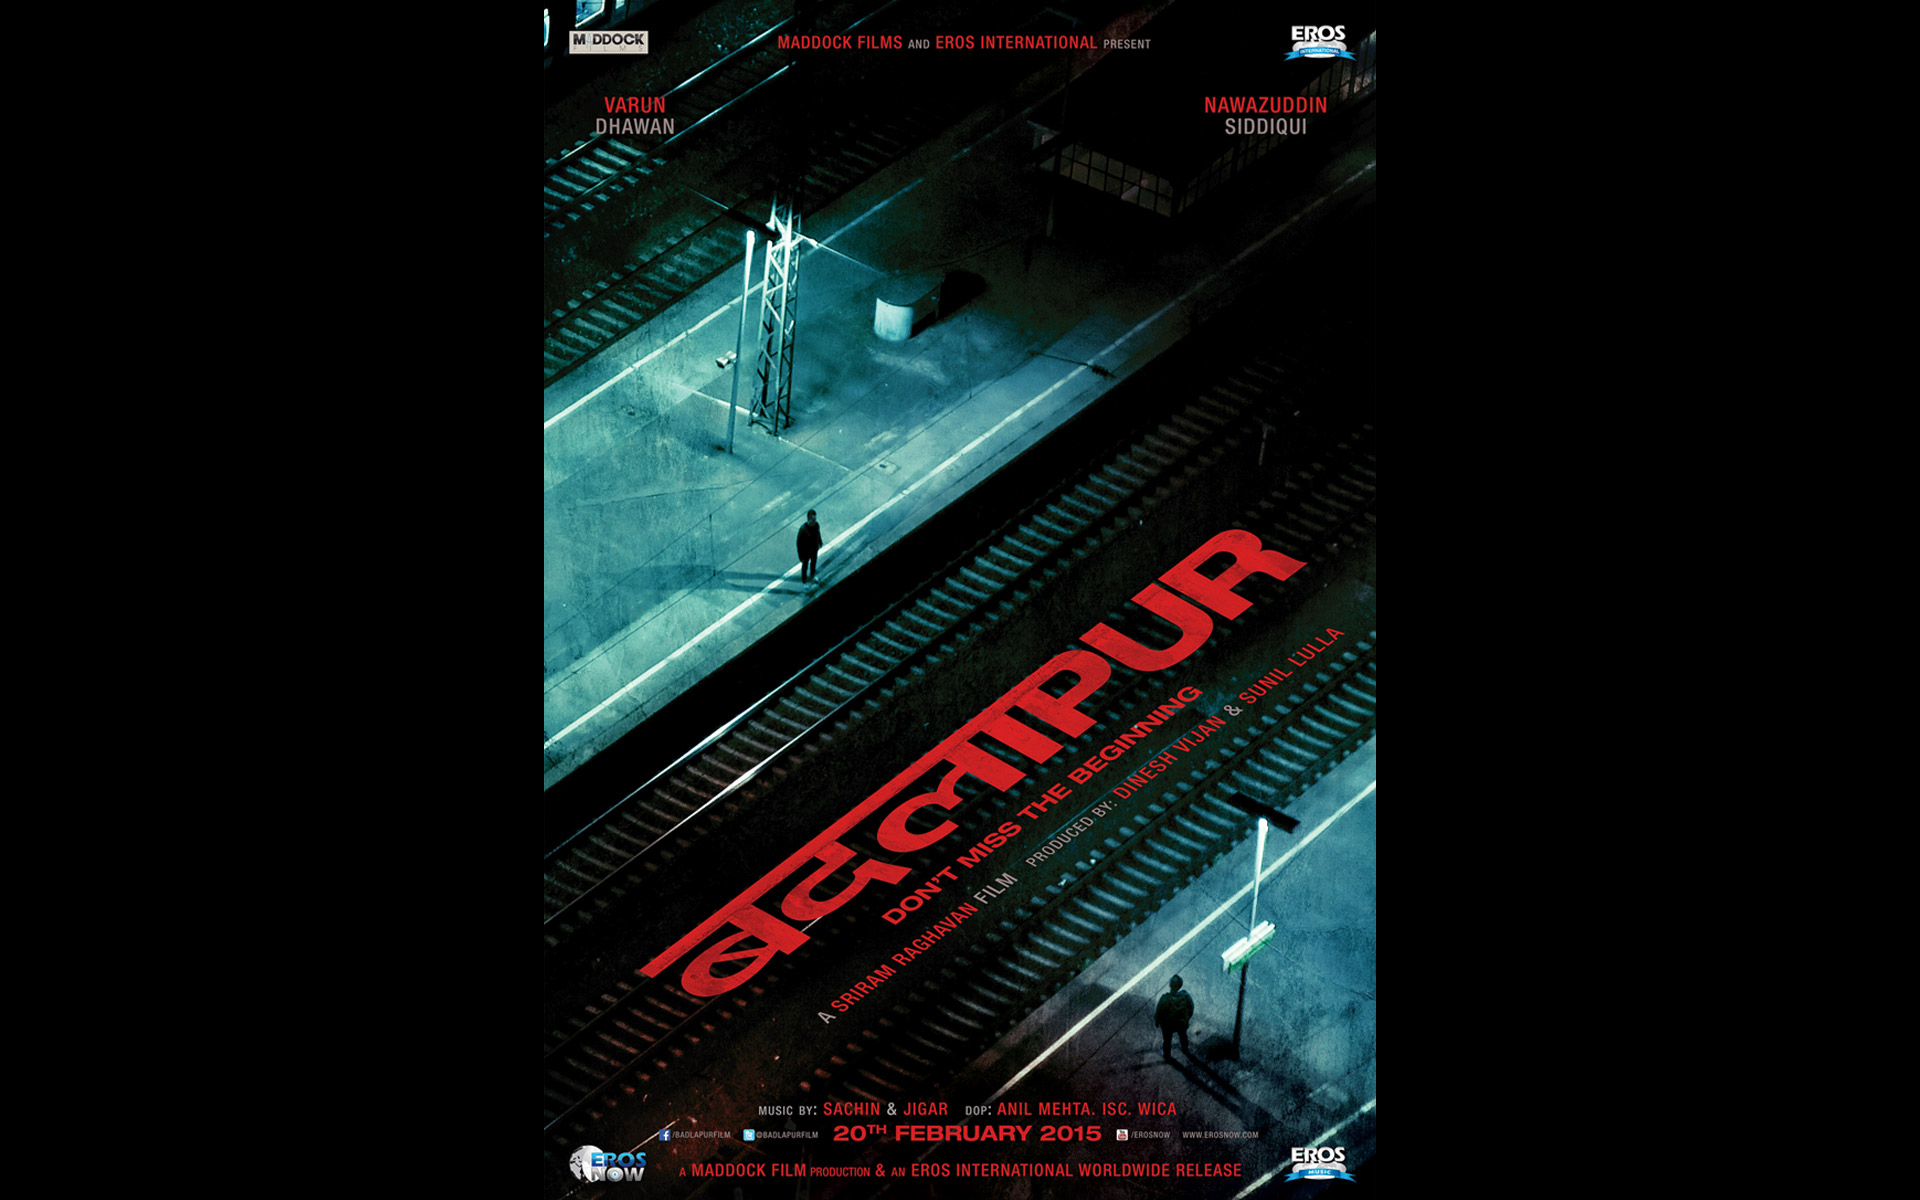 badlapur-movie-poster-free-download-badlapur-movie-poster-free-download-Badlapur-Varun-Dhawan-New-wallpaper-wp3402828